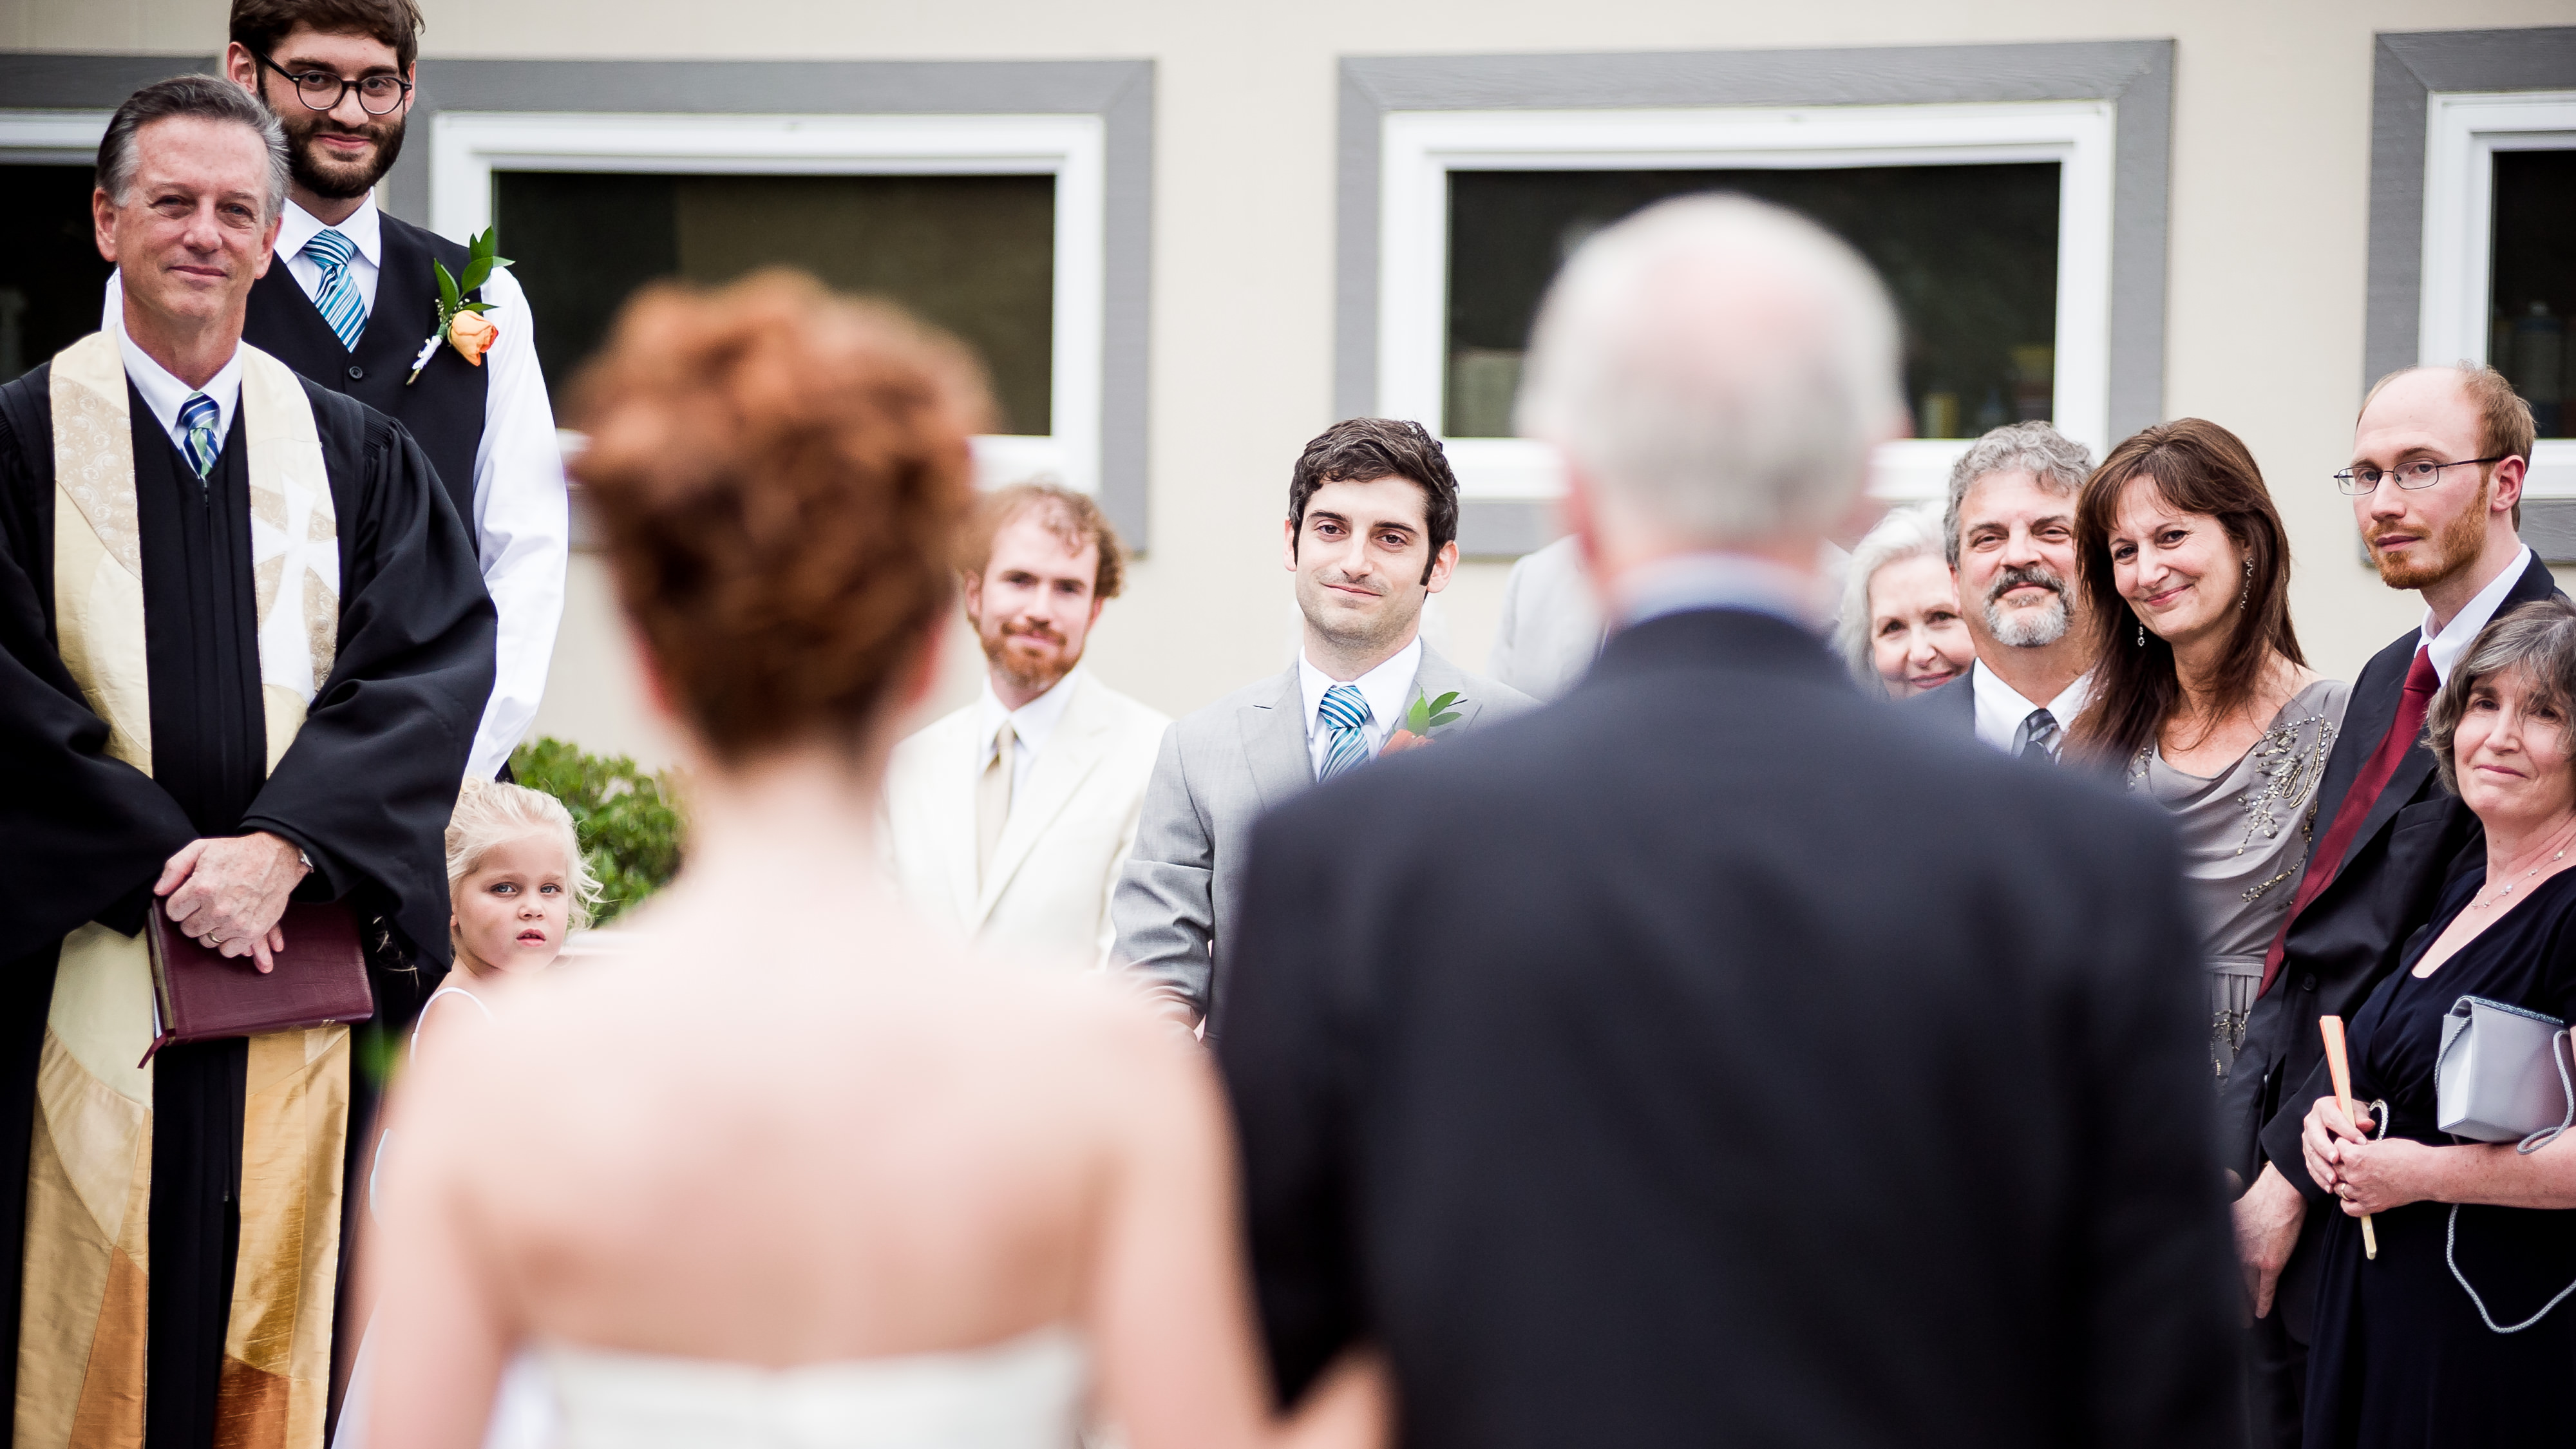 Sweet moment of groom seeing bride walk down the aisle